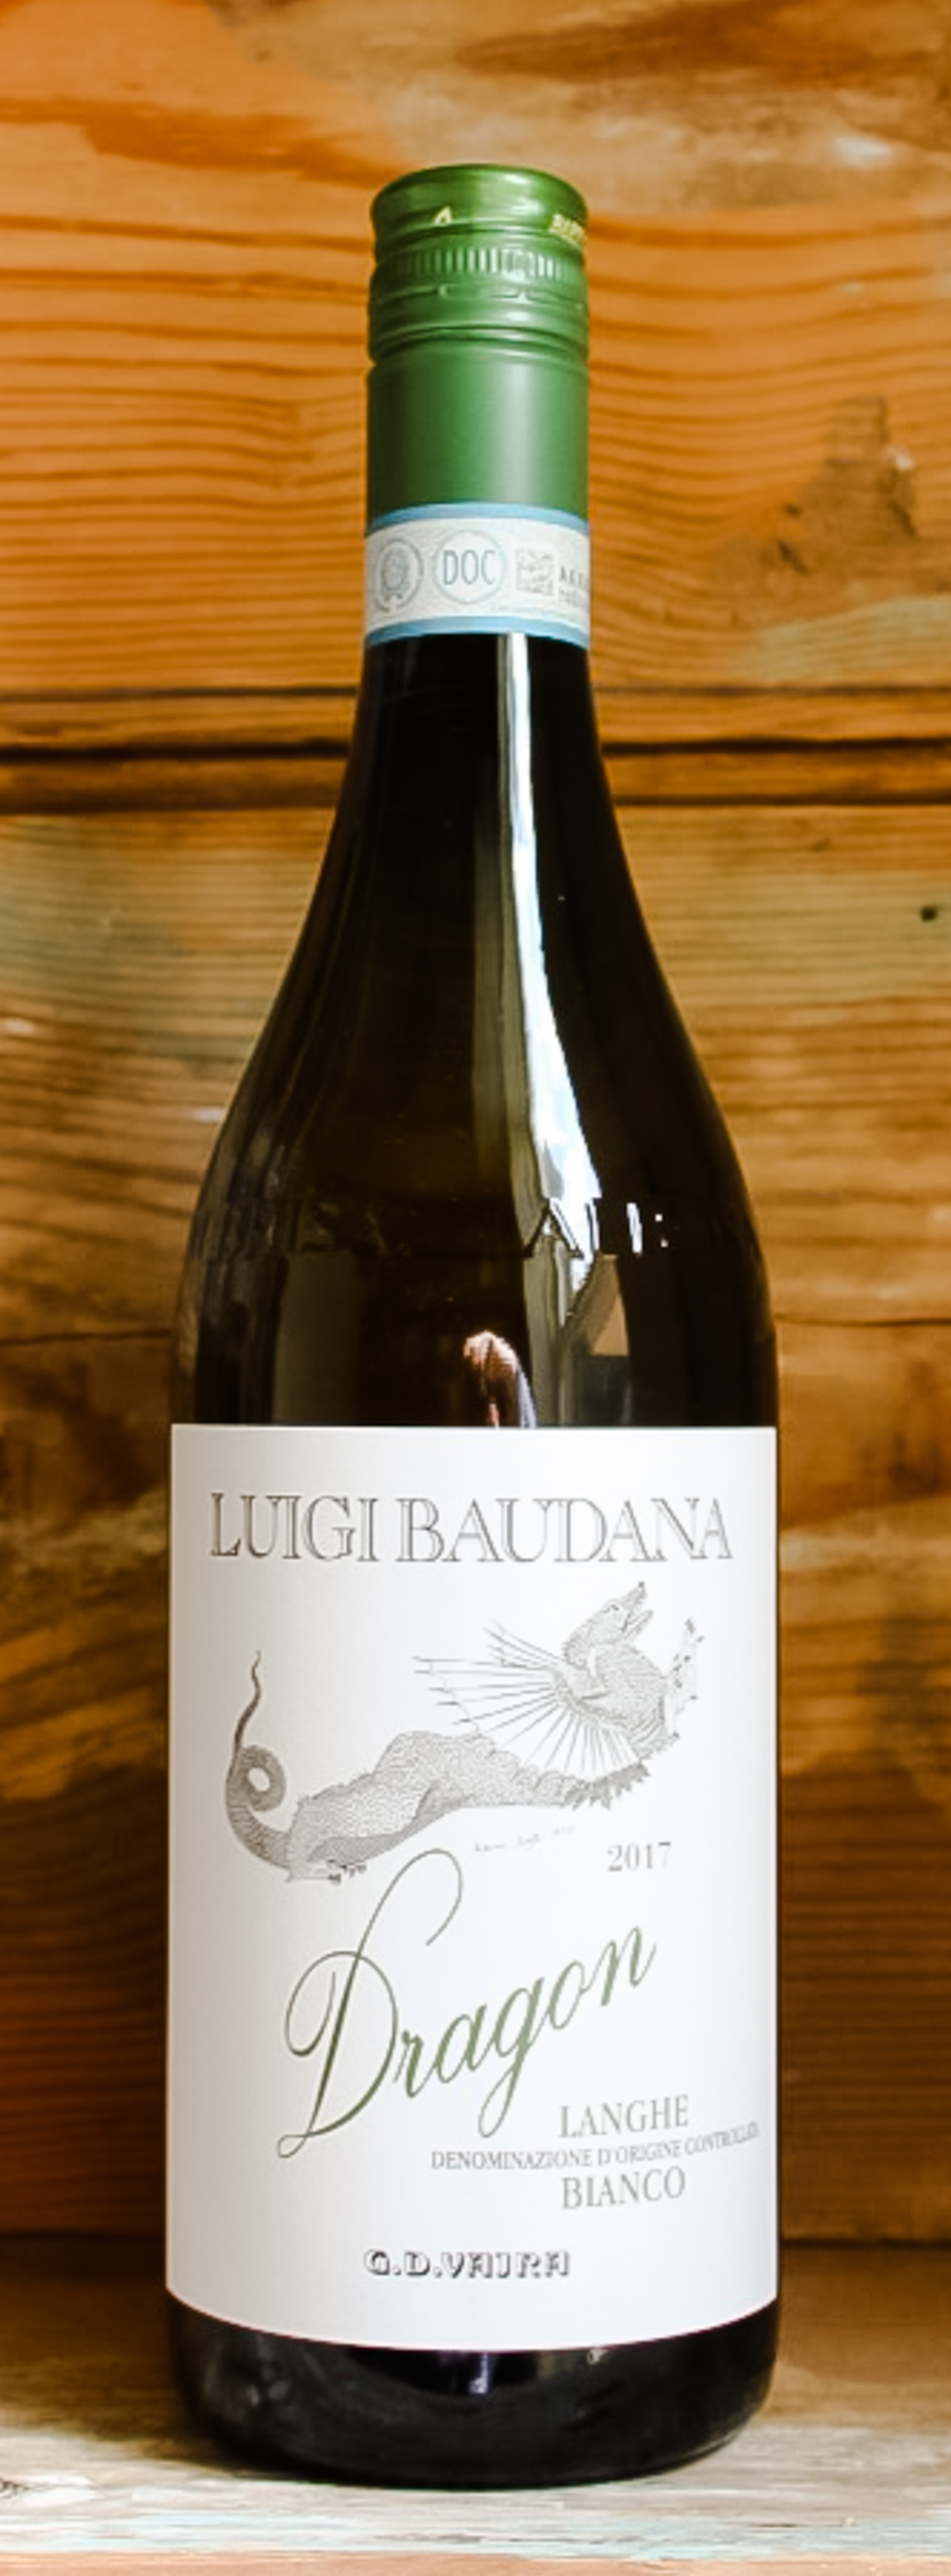 G.D. Vajra Luigi Baudana Dragon Langhe Bianco 2017 - Origin: ItalyRetail: $22.95 | Sale: $20.66This small estate is just four hectares of vineyard, located in Serralunge d'Alba, a commune in Piedmont. Their tiny cellar is situated in the village, while their vineyards are primarily in the 'crus' of Baudana and the highly regarded Cerretta. After 30 years running the winery, Luigi Baudana visited the Vajra winery incognito one day and was so impressed with the way they dealt with people and communicated their philosophy that he rang Aldo Vajra soon afterwards to ask if he would be interested in buying his estate. A deal was soon done, and the Vajra family have run this estate alongside Luigi and his wife Fiorina ever since. In the glass this white field blend shows a beautiful straw yellow color, very intense and luminous. The nose is full of floral sensations, enriched with nuances of peach, apple, lemon, and a touch of fresh grass. On the palate it is light-bodied and savory with a pleasant freshness.Chardonnay | Sauvignon Blanc | Riesling | Nascetta